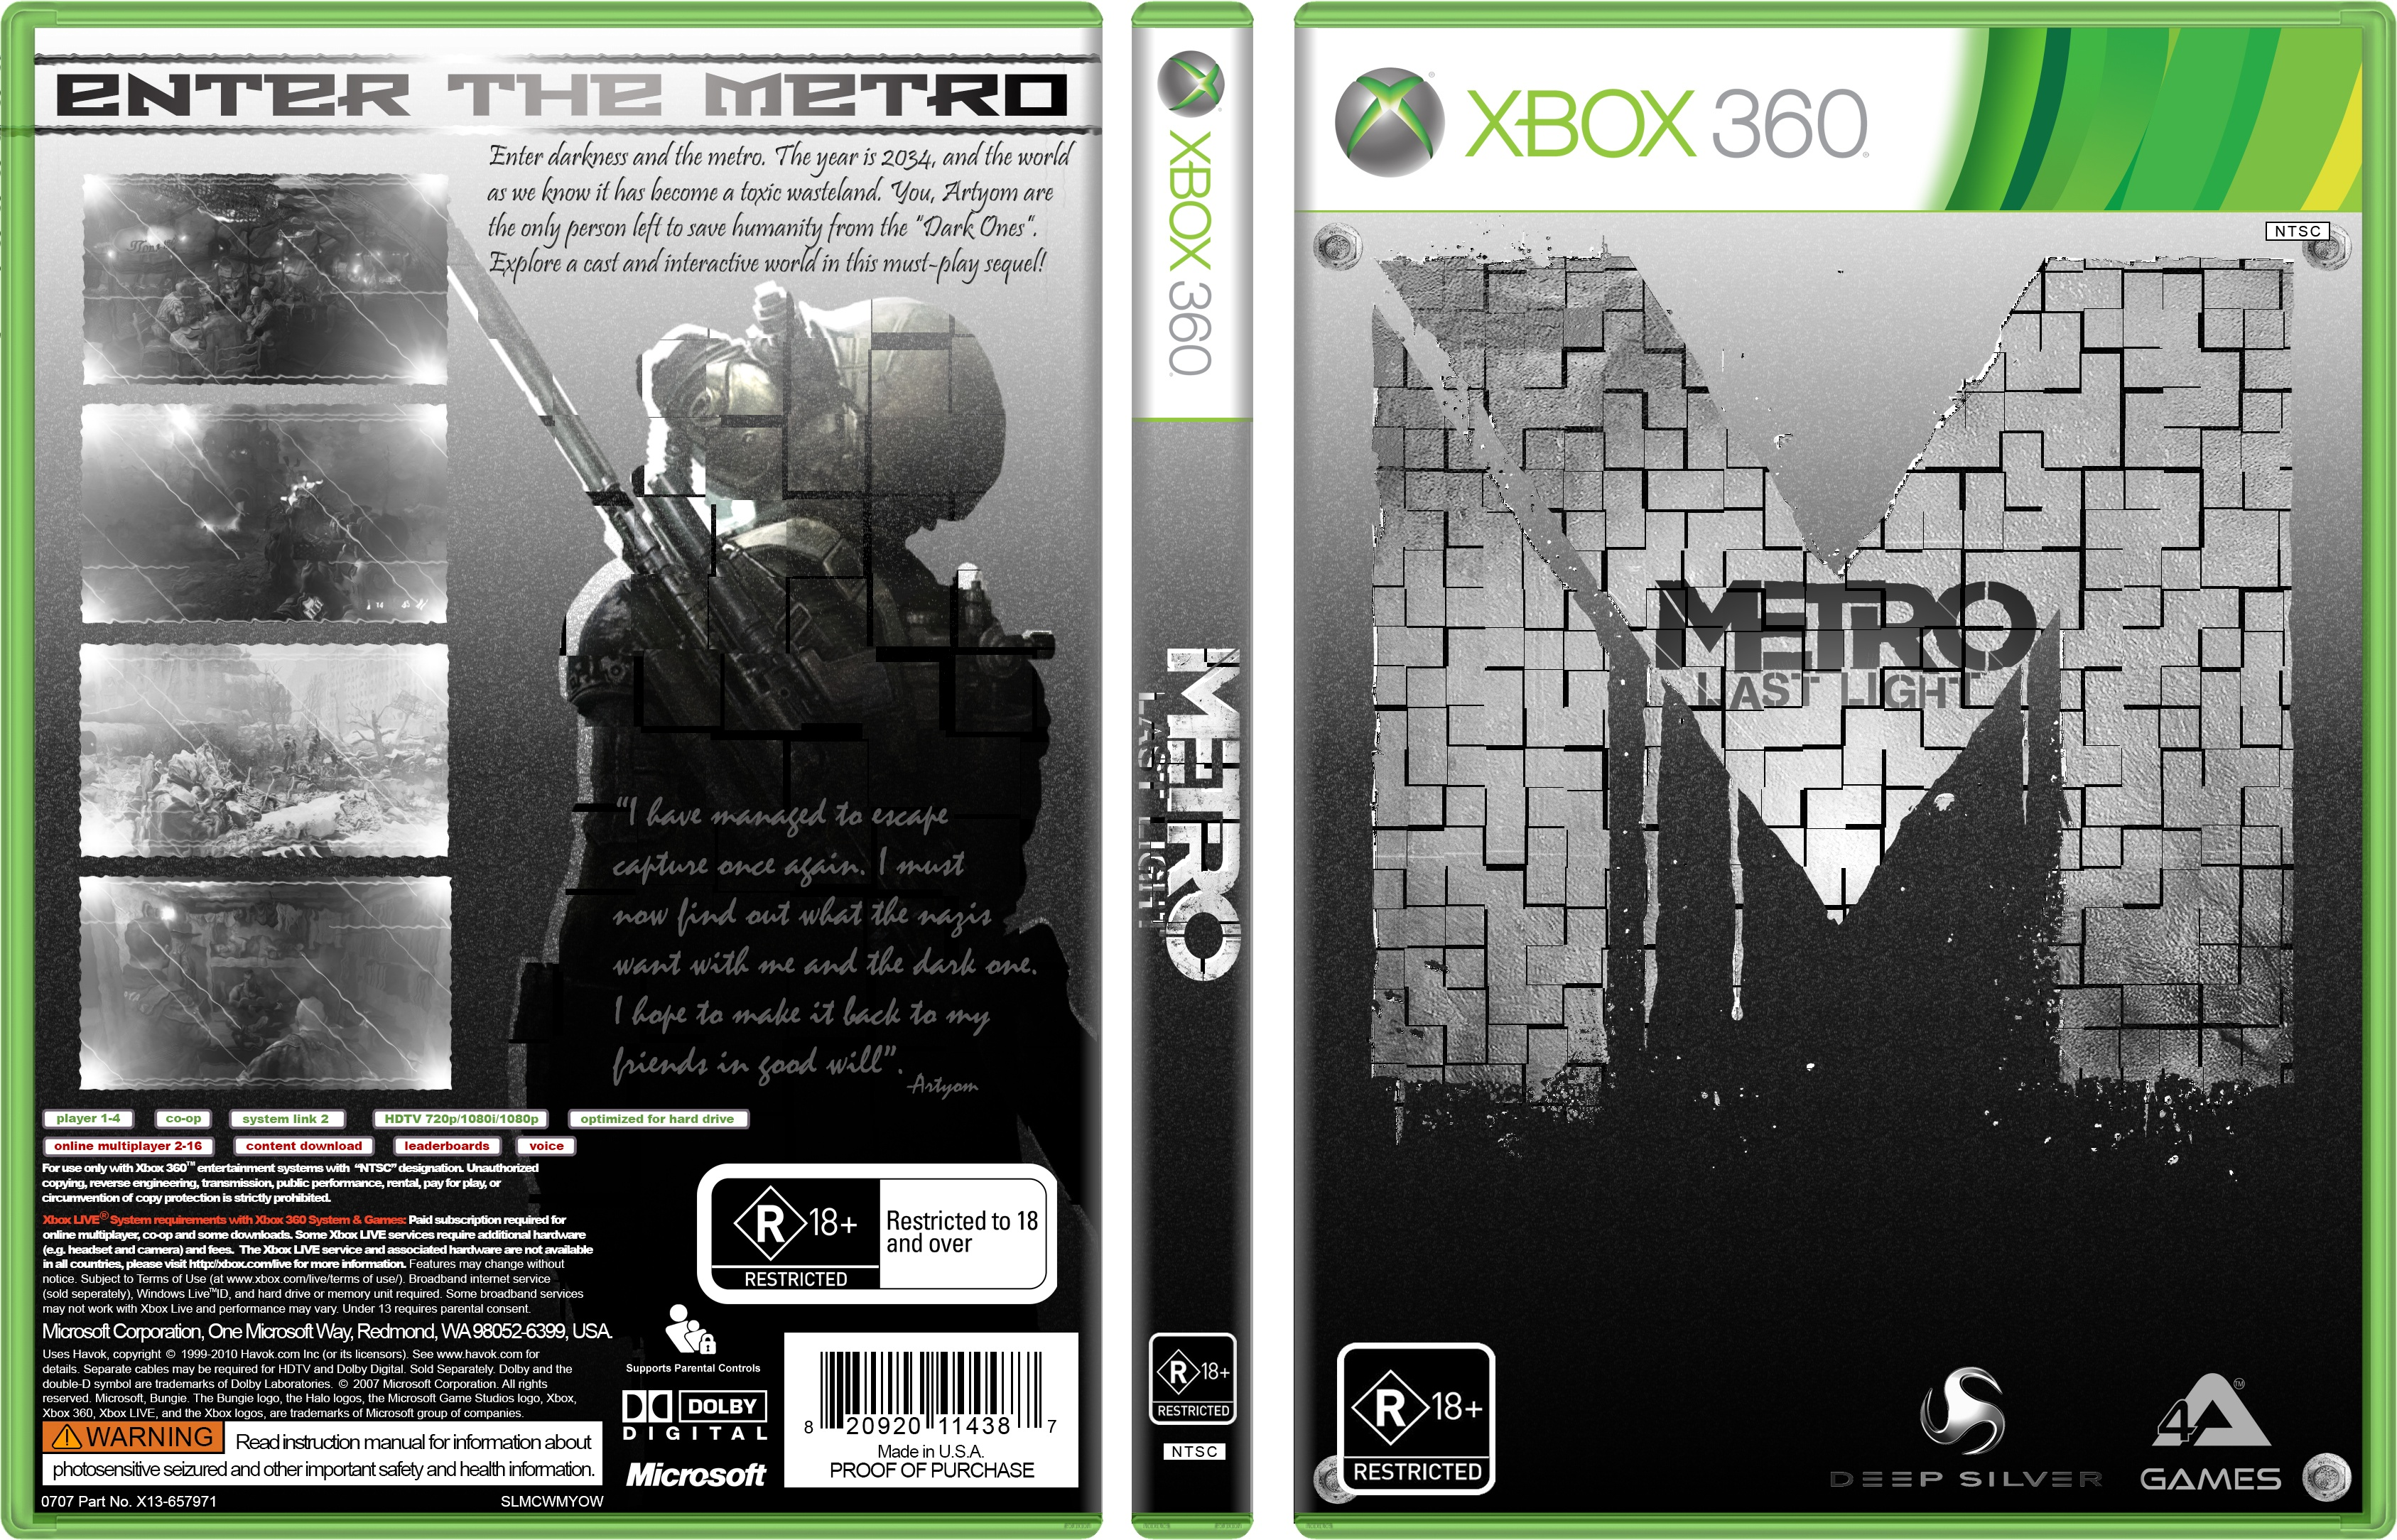 Book Cover Pictures Xbox : Metro last light xbox box art cover by slicer